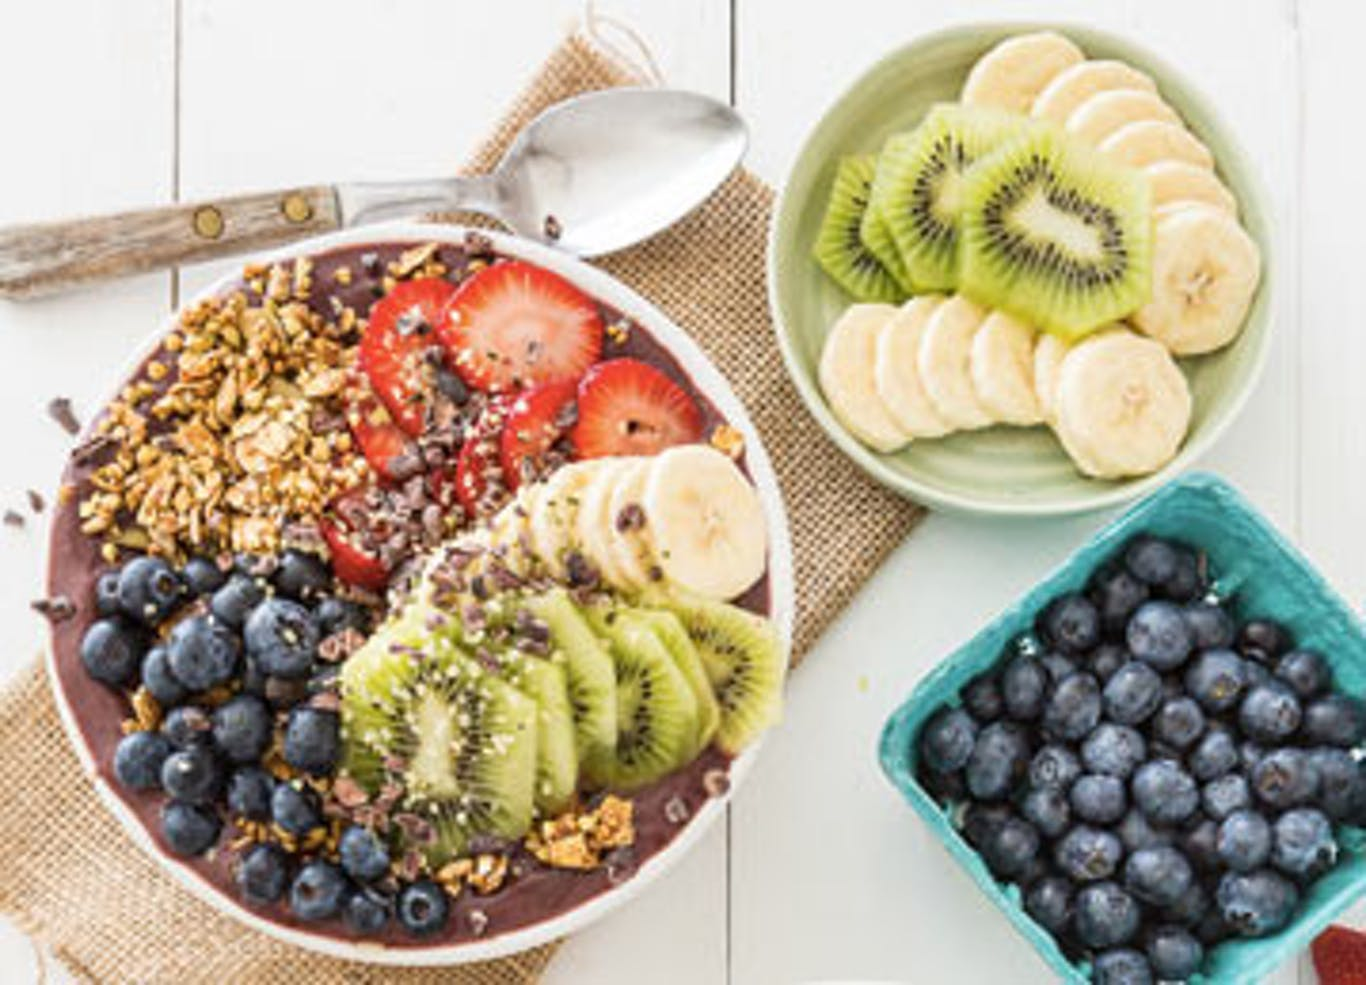 FRUIT-FILLED ACAI BOWL